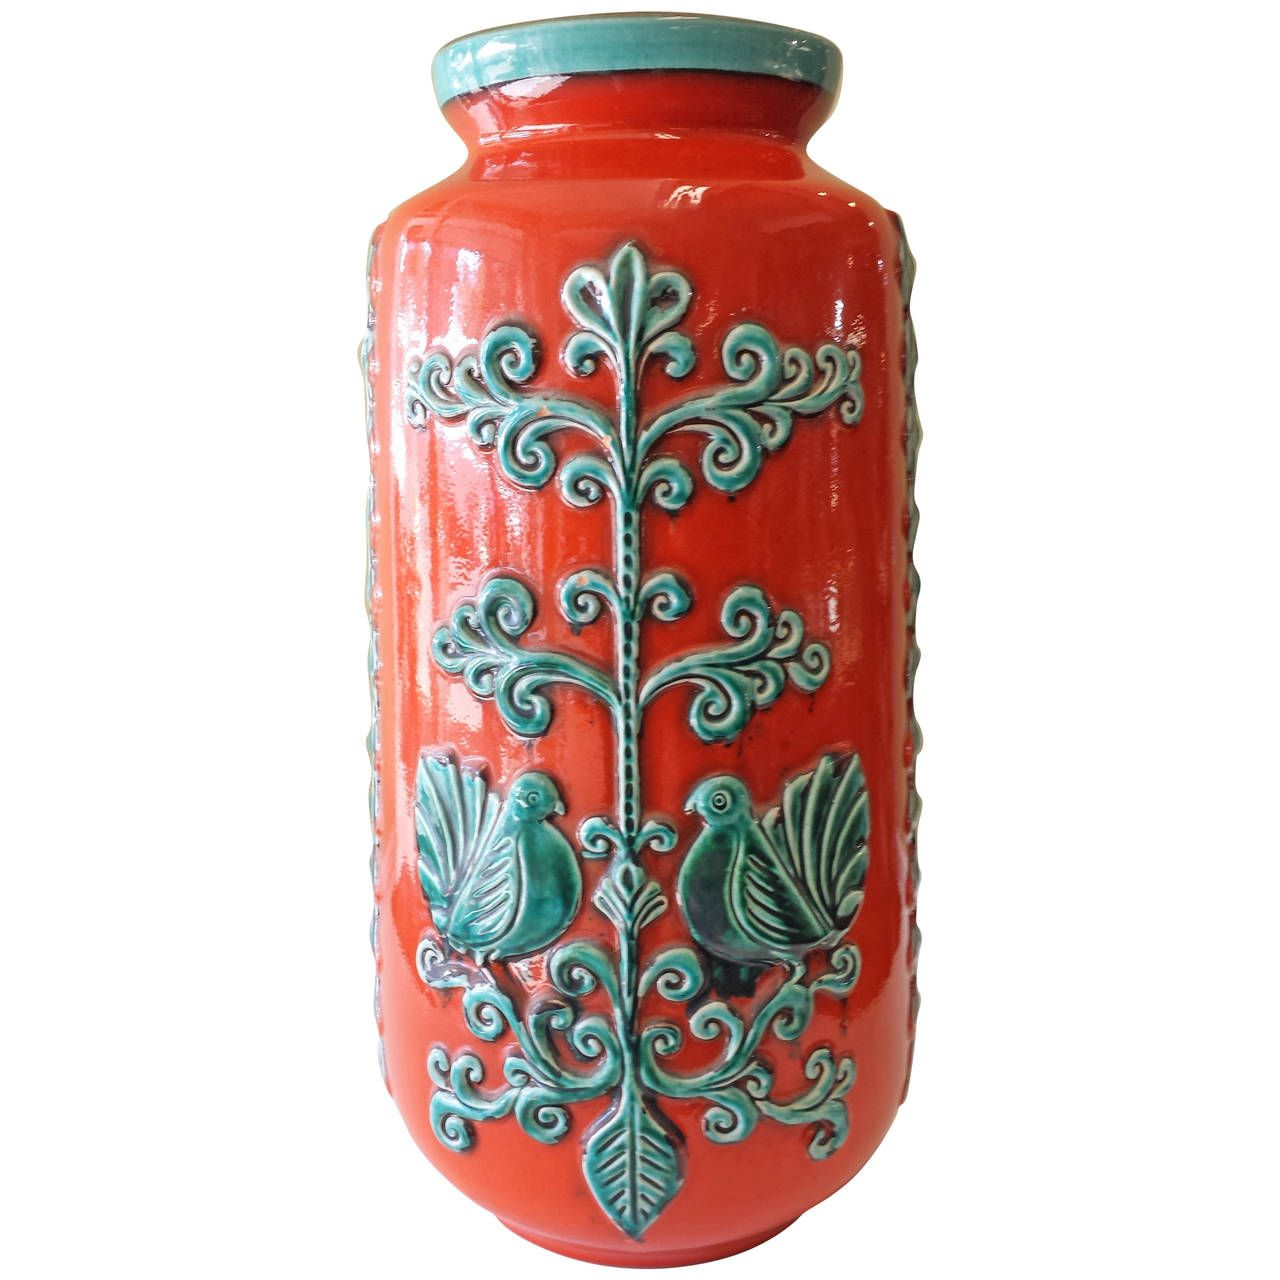 Large W. Germany Burnt Orange and Turquoise Vase with Love Birds 1 – $379.57CAD